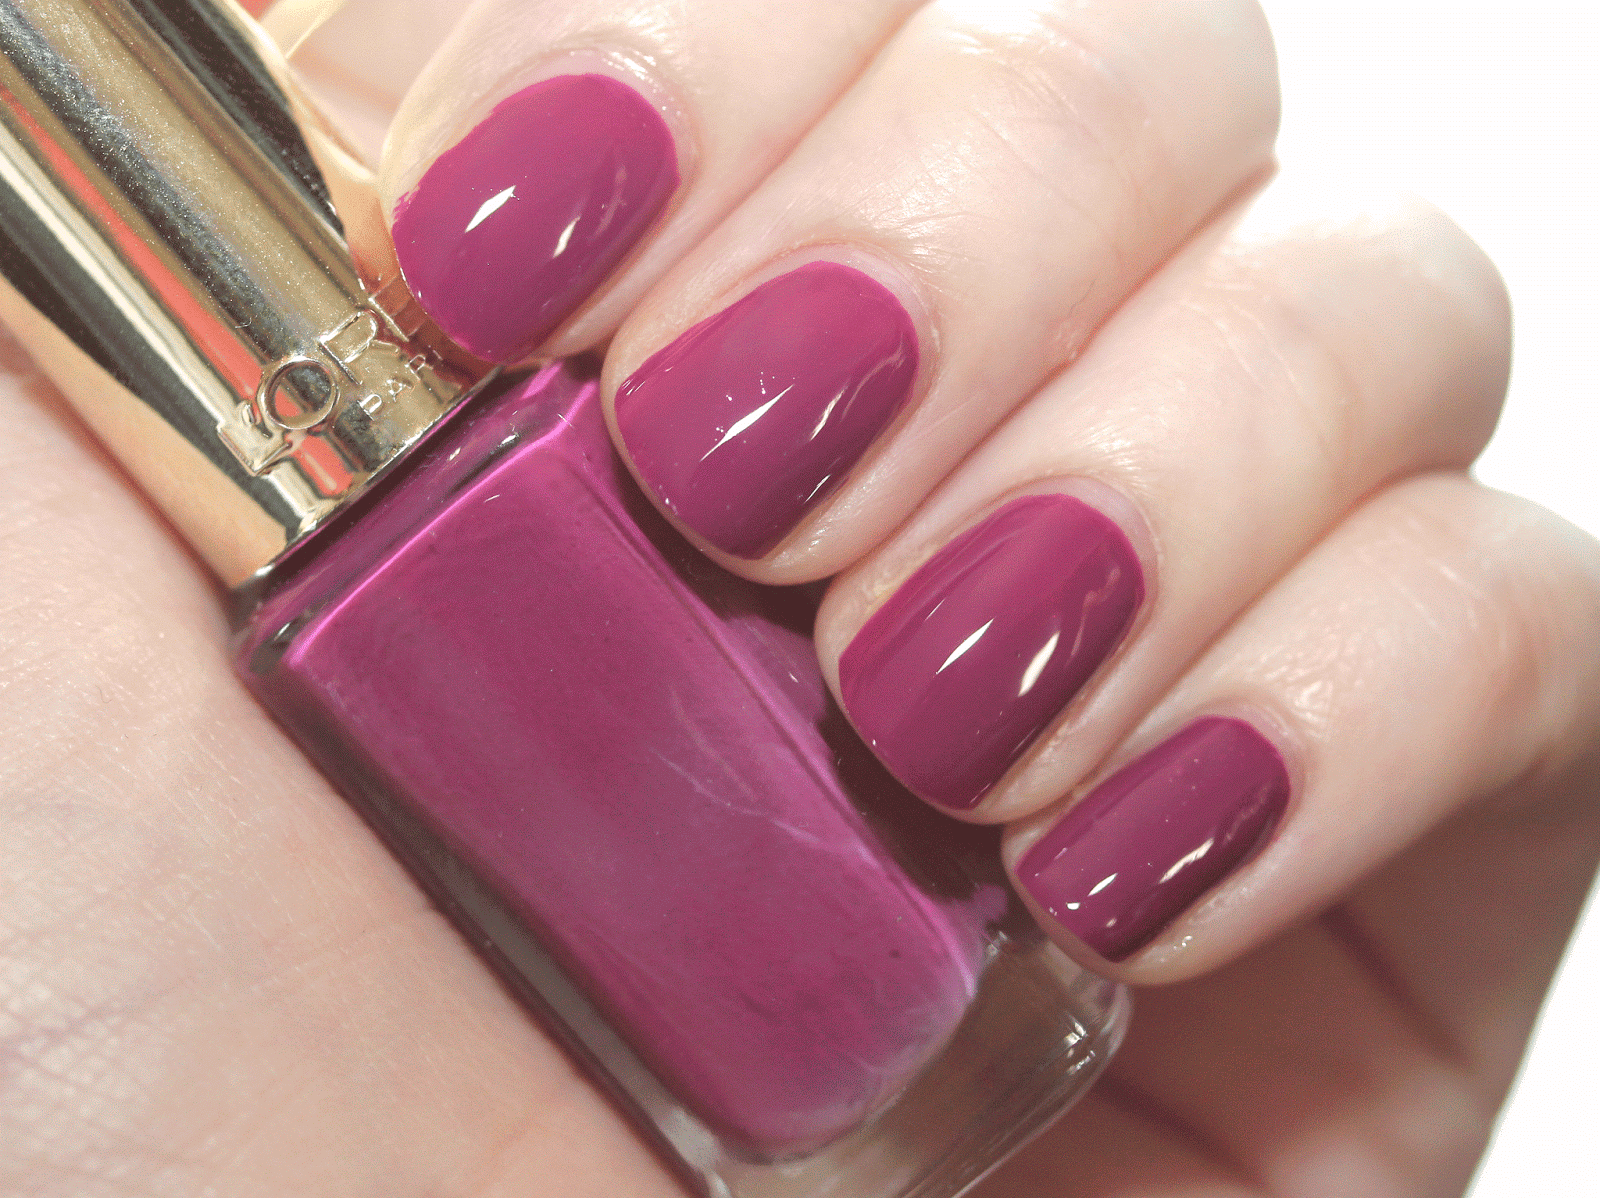 Makeup, Beauty & Fashion: NAILS OF THE DAY: L'OREAL PARIS COLOR ...